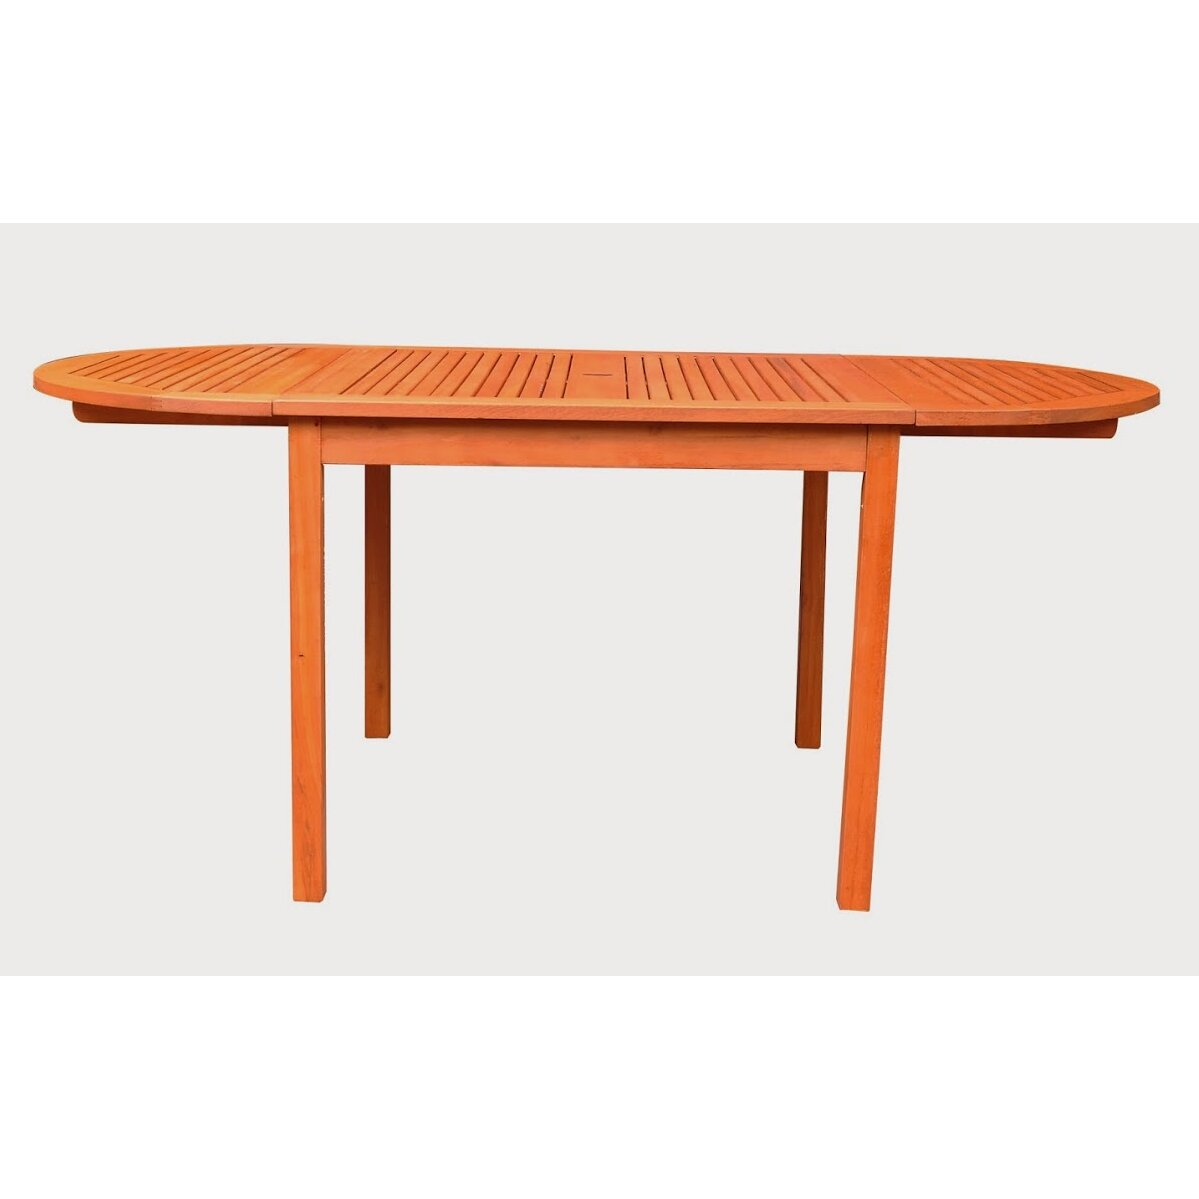 Vifah dining table reviews for Wayfair dining table